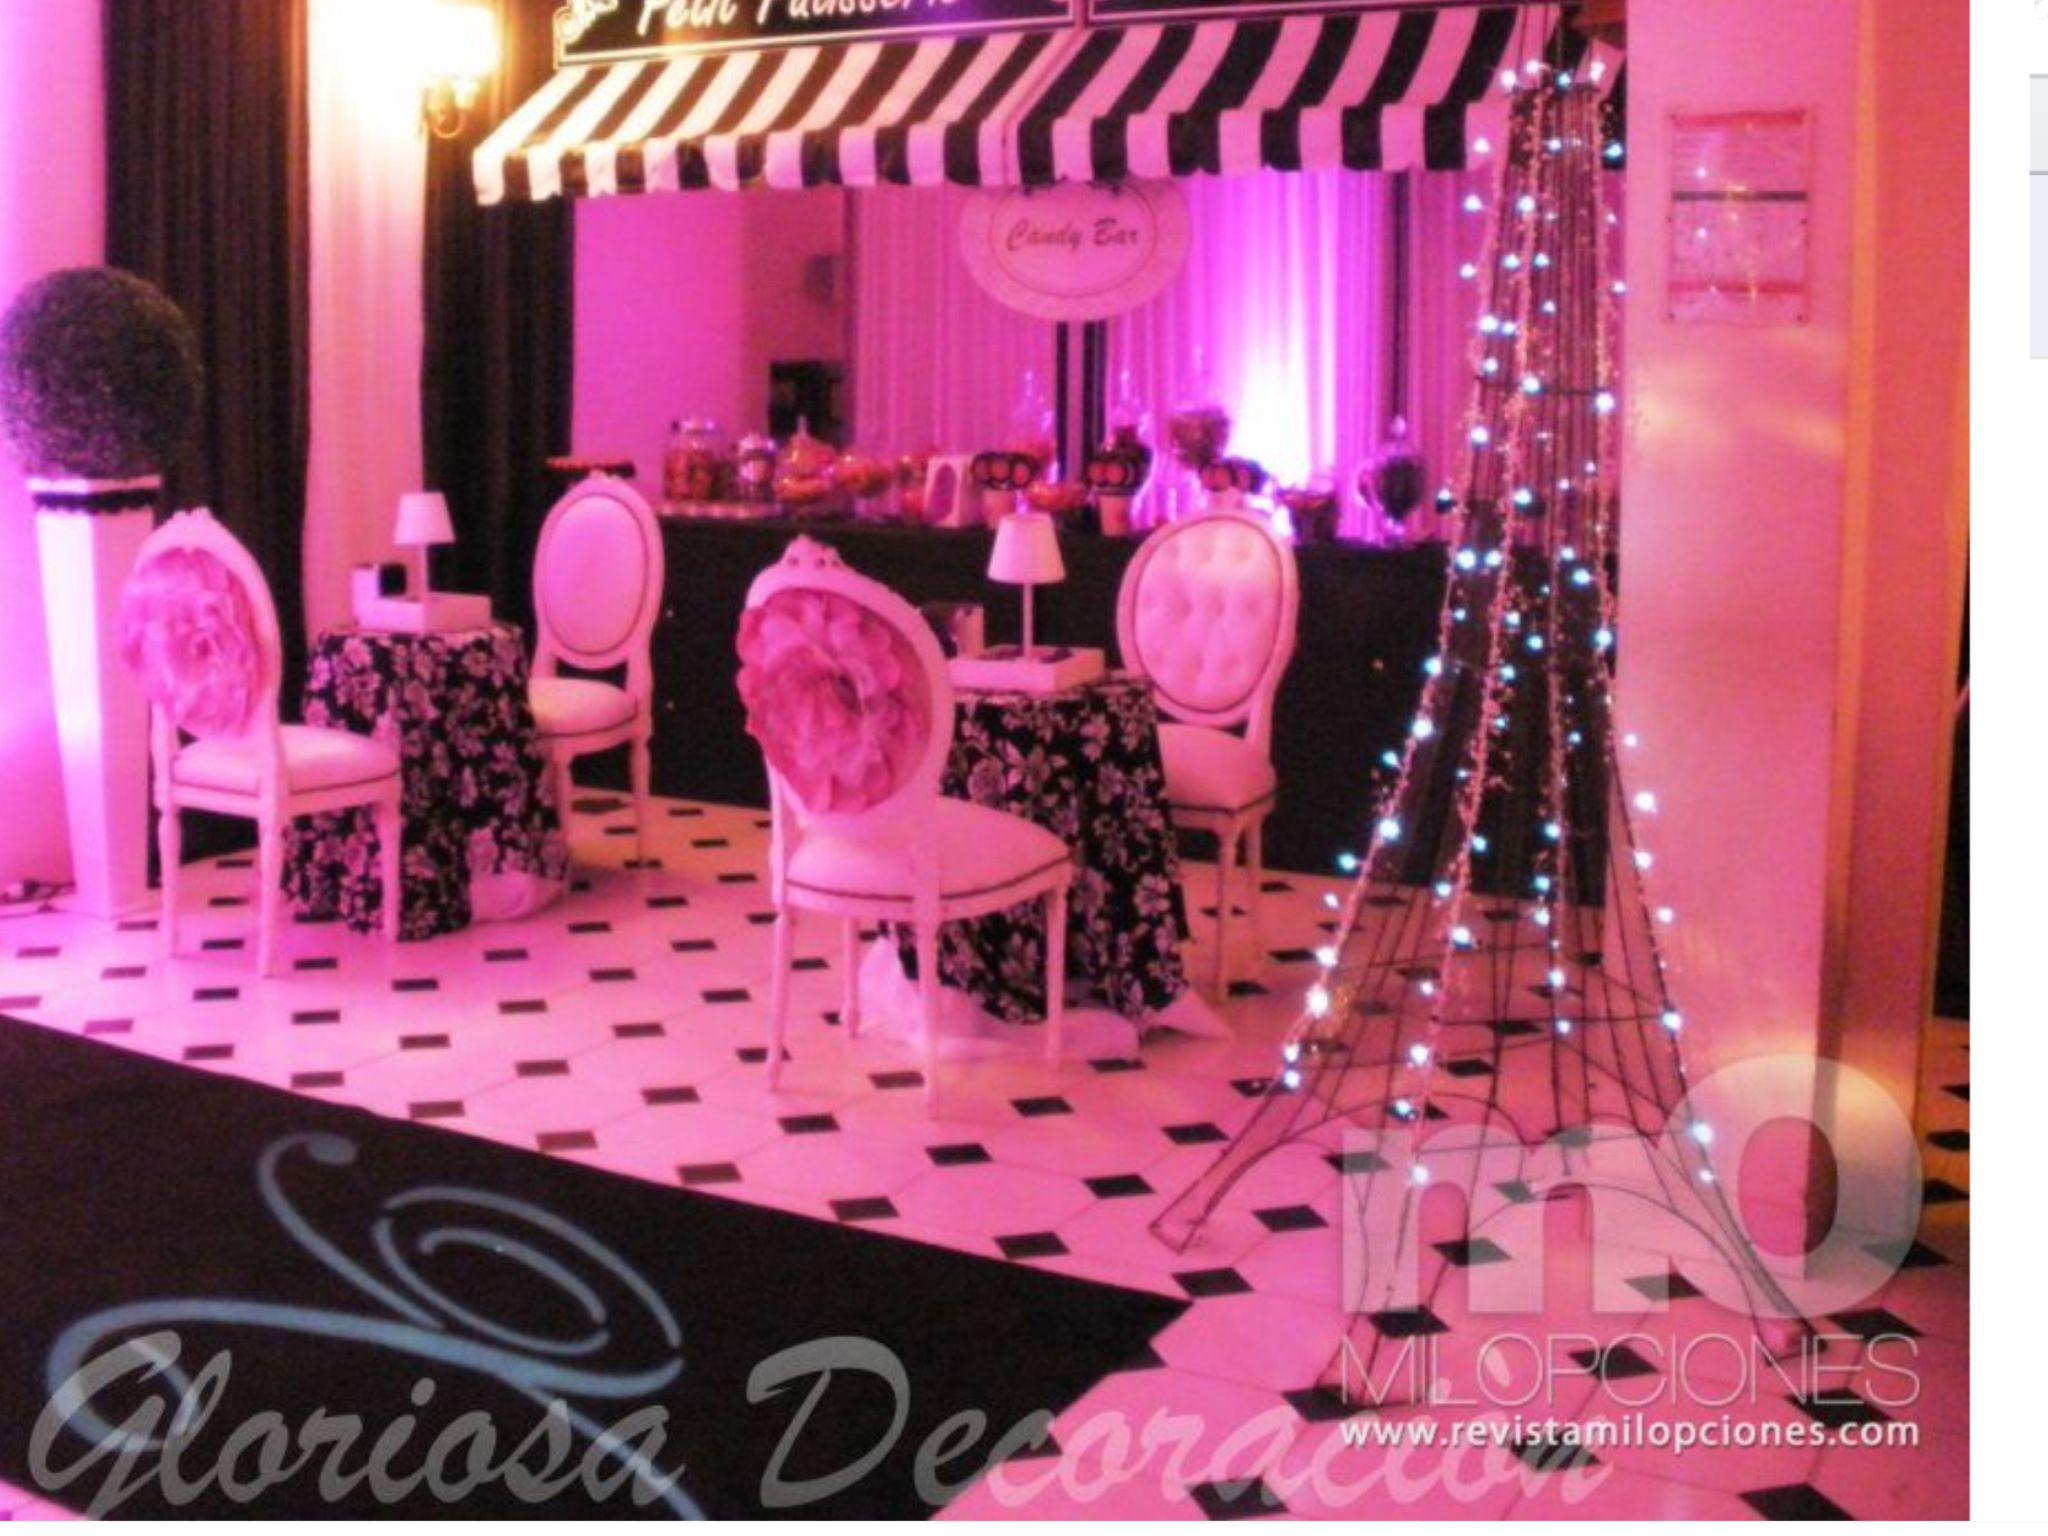 Paris decorations for quinceaneras - Fun Decor For A Night In Paris Themed Party Get More Fun Party Planning Ideas